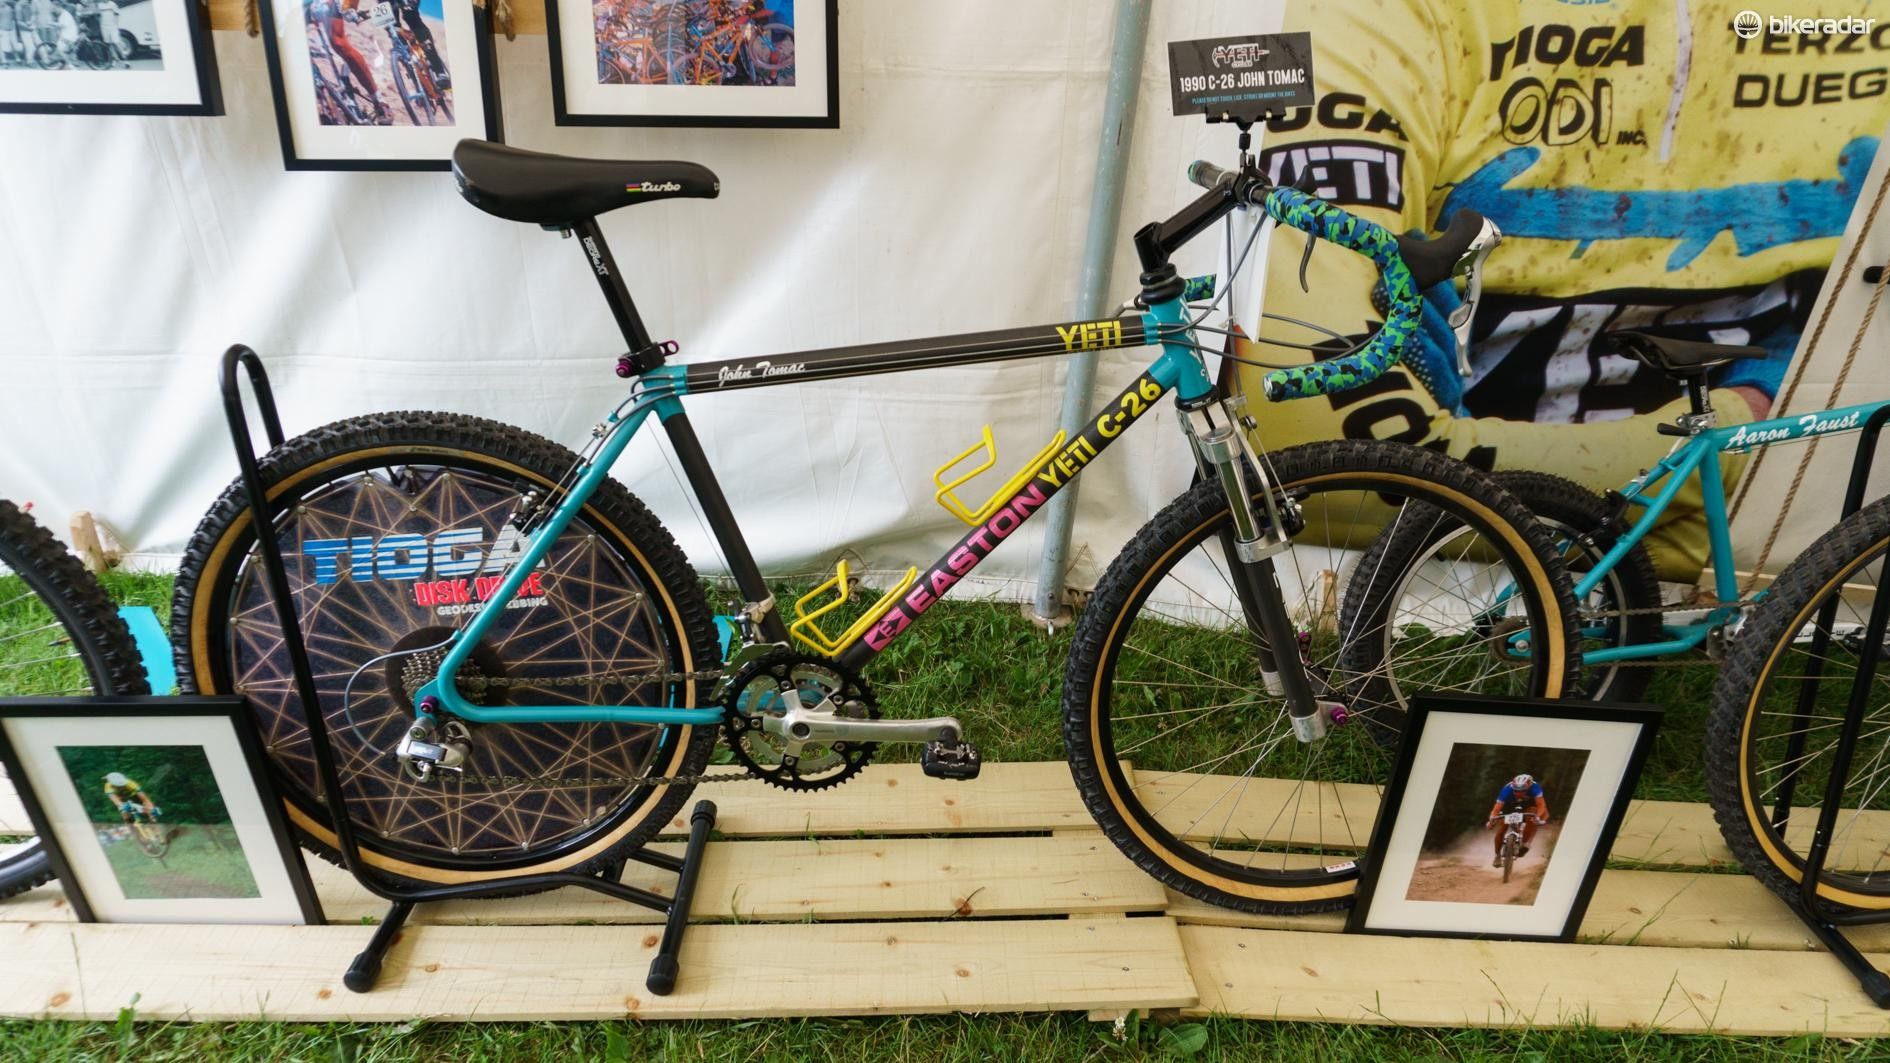 John Tomac's Yeti C-26 complete with Tioga Disc Drive rear wheel and drop handlebar